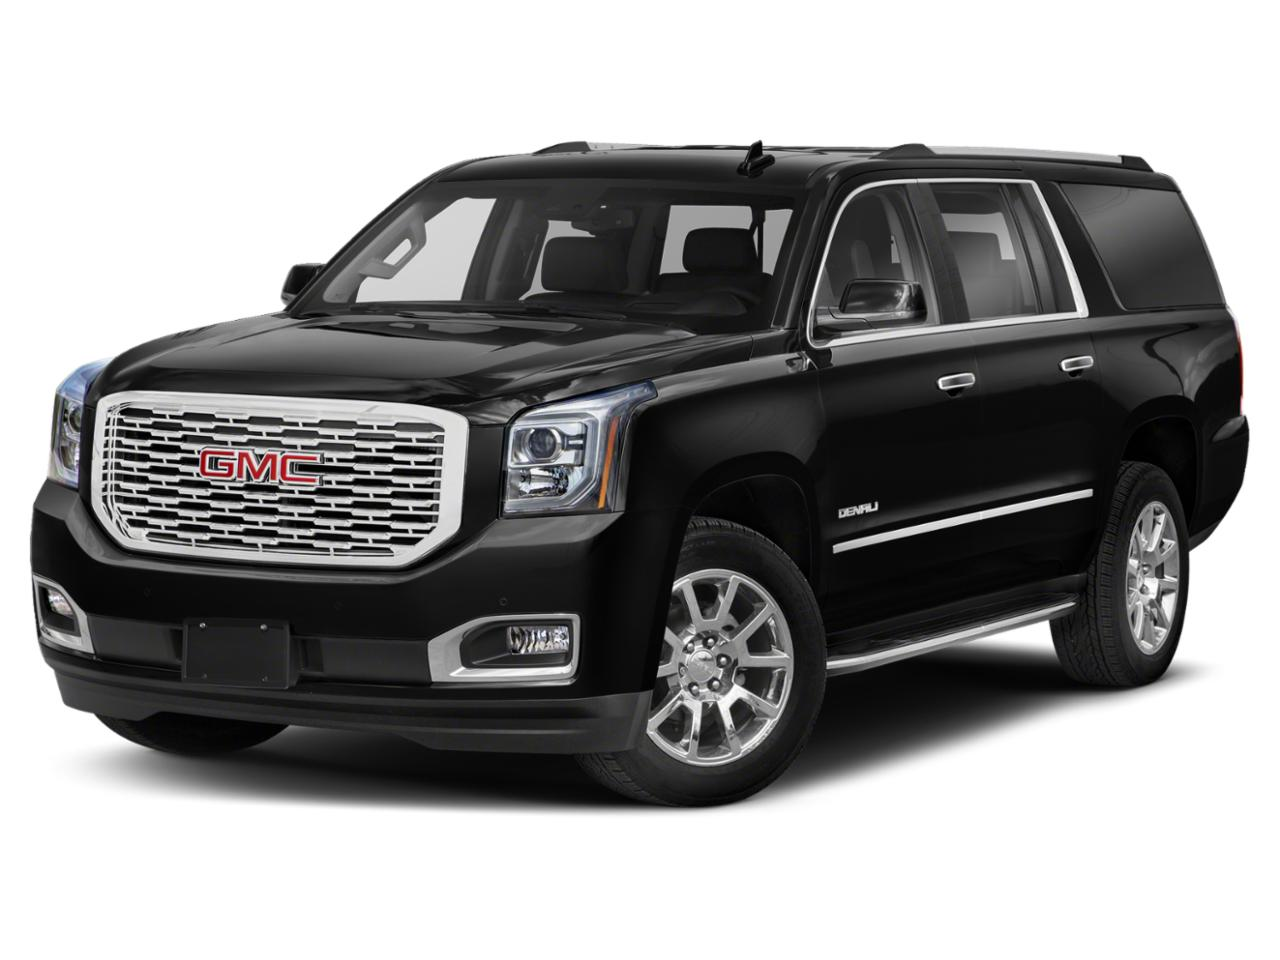 Onyx Black 2020 GMC Yukon XL DENALI SUV Lexington NC